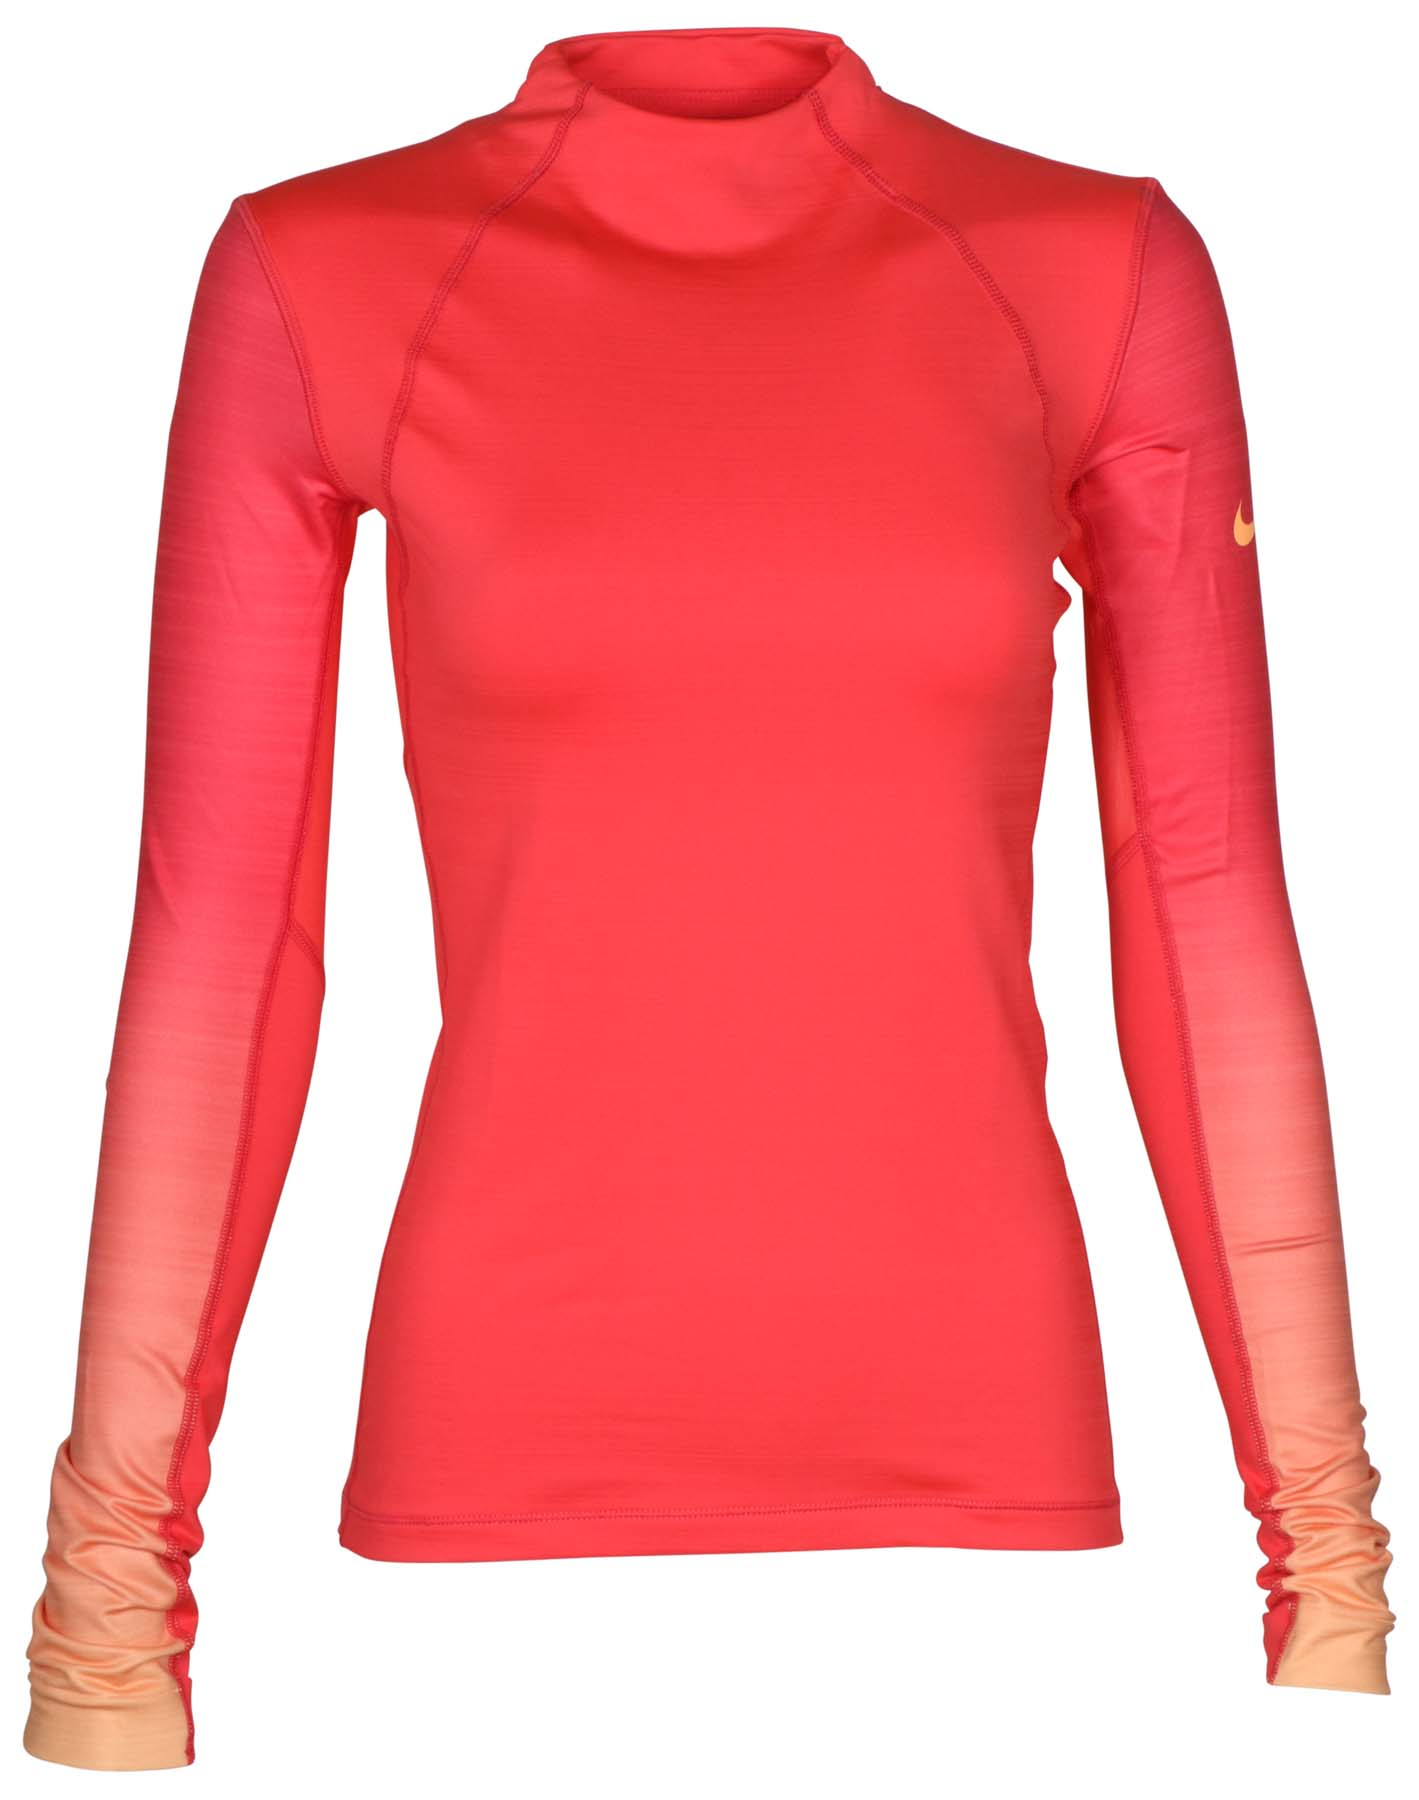 5682b6b935 Details about Nike Women s Pro Hyperwarm Long Sleeve Training Top-Coral-XL